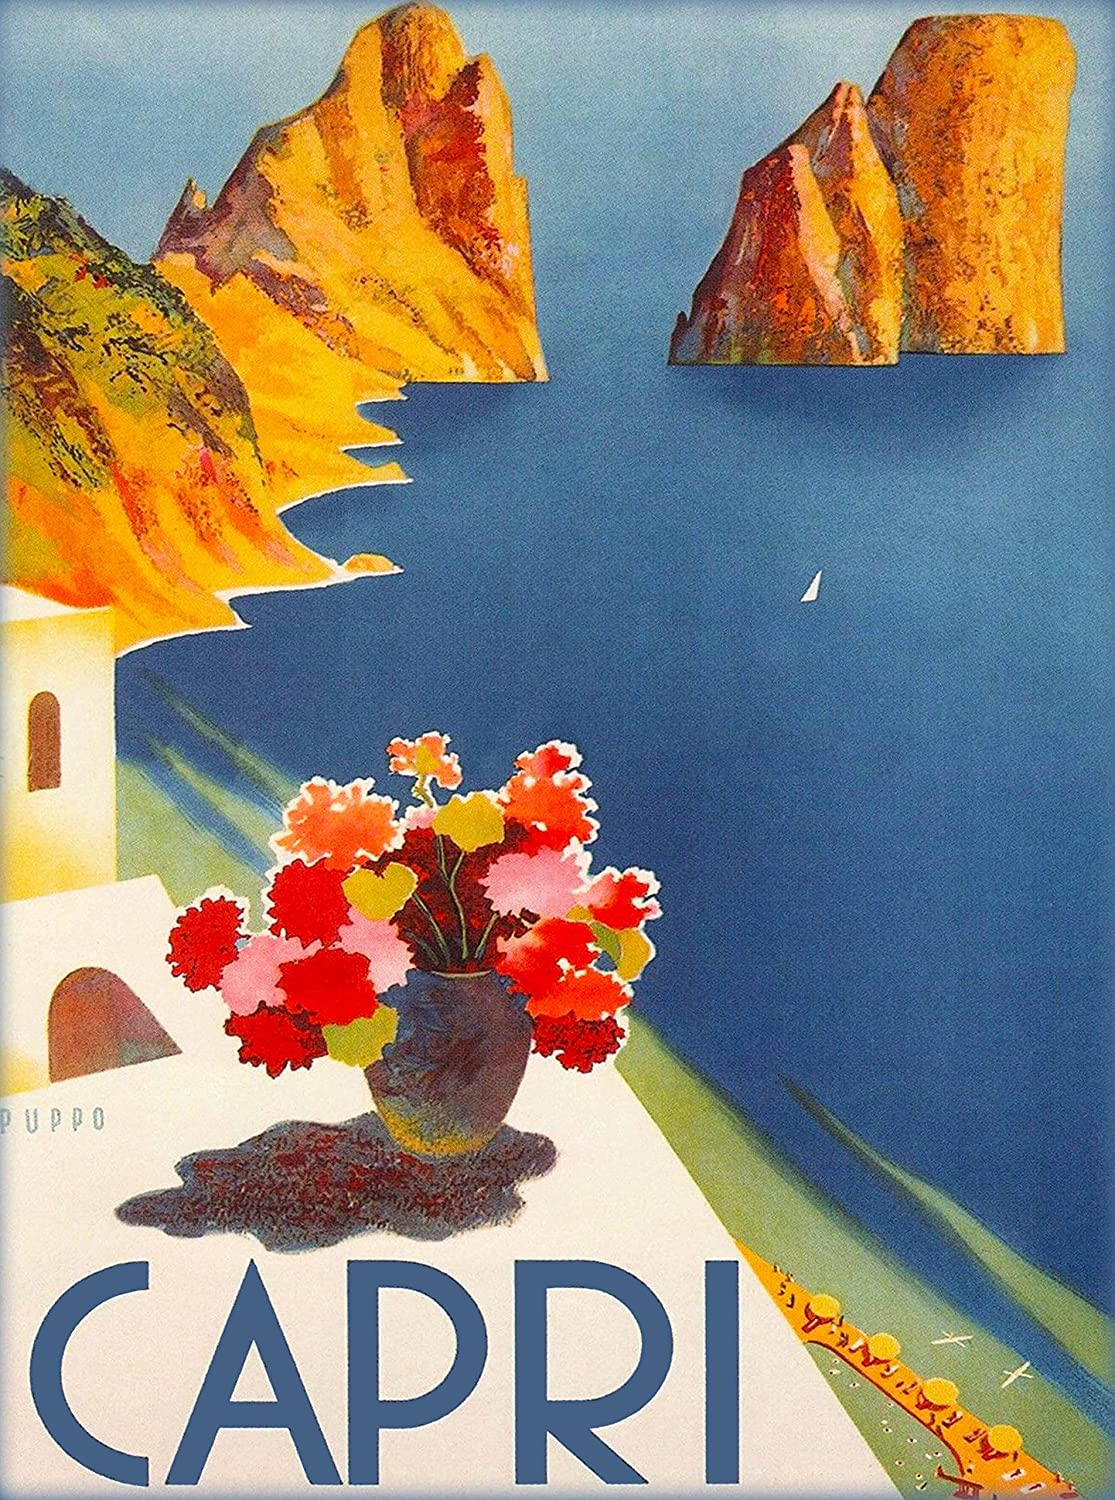 A SLICE IN TIME Capri Italy Vintage Italian Europe Art Travel Advertisement Collectible Wall Decor Poster Picture Print - Poster Measures 10 x 13.5 inches